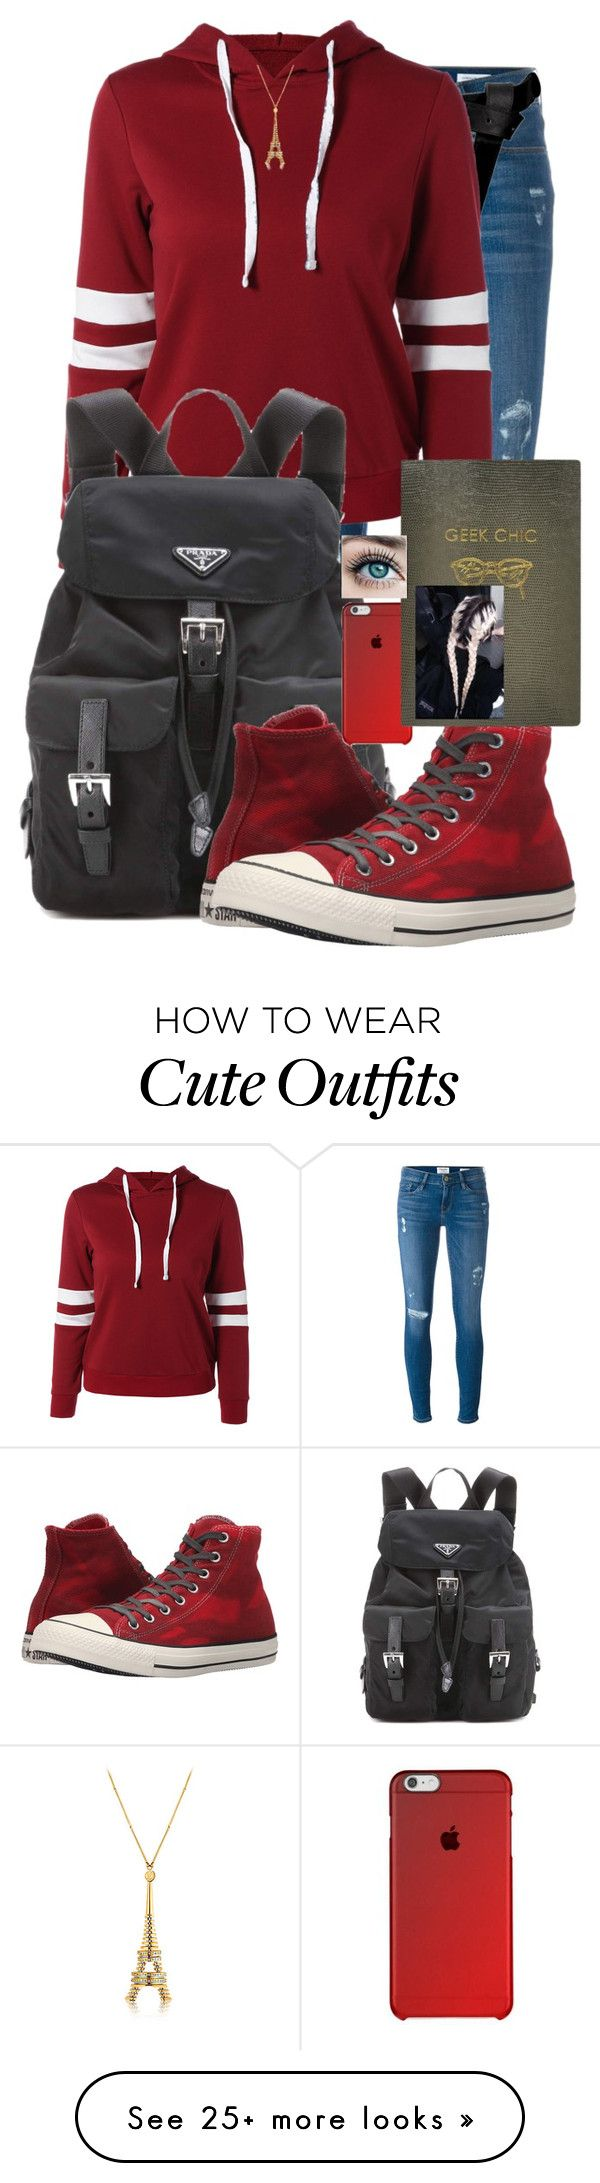 """Sporty,Red, and cute!"" by soccercrazy14 on Polyvore featuring Frame Denim, ASOS, Prada, Converse and Sloane Stationery"